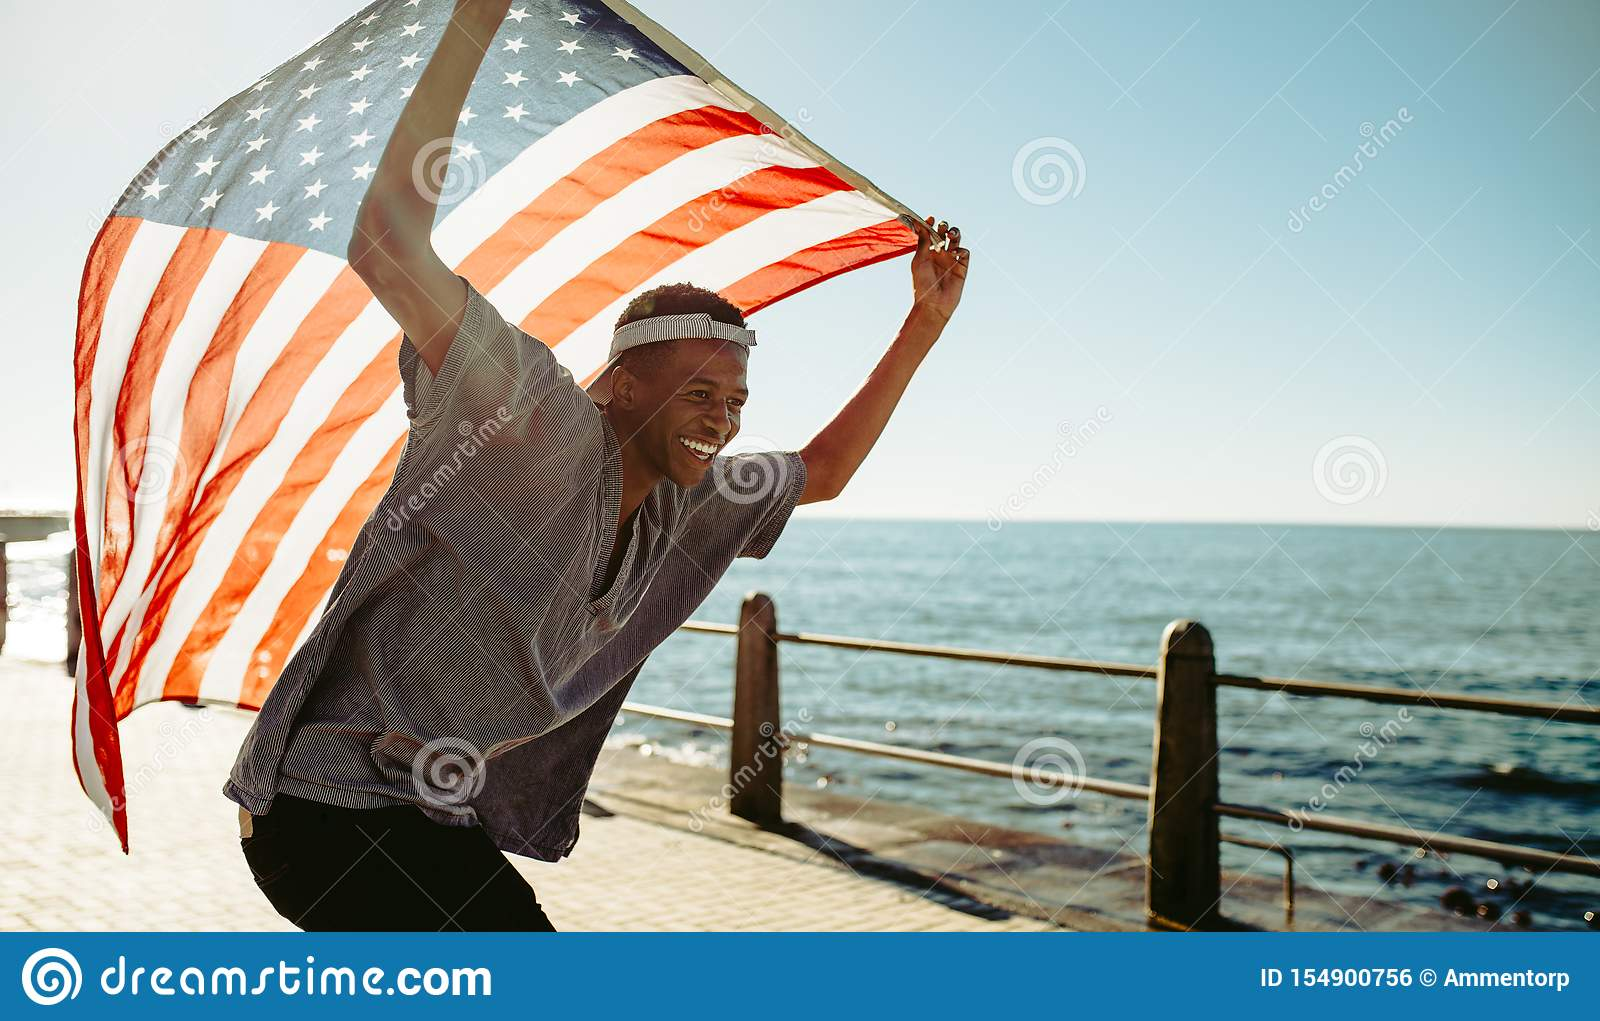 Cheerful young guy at promenade with american flag